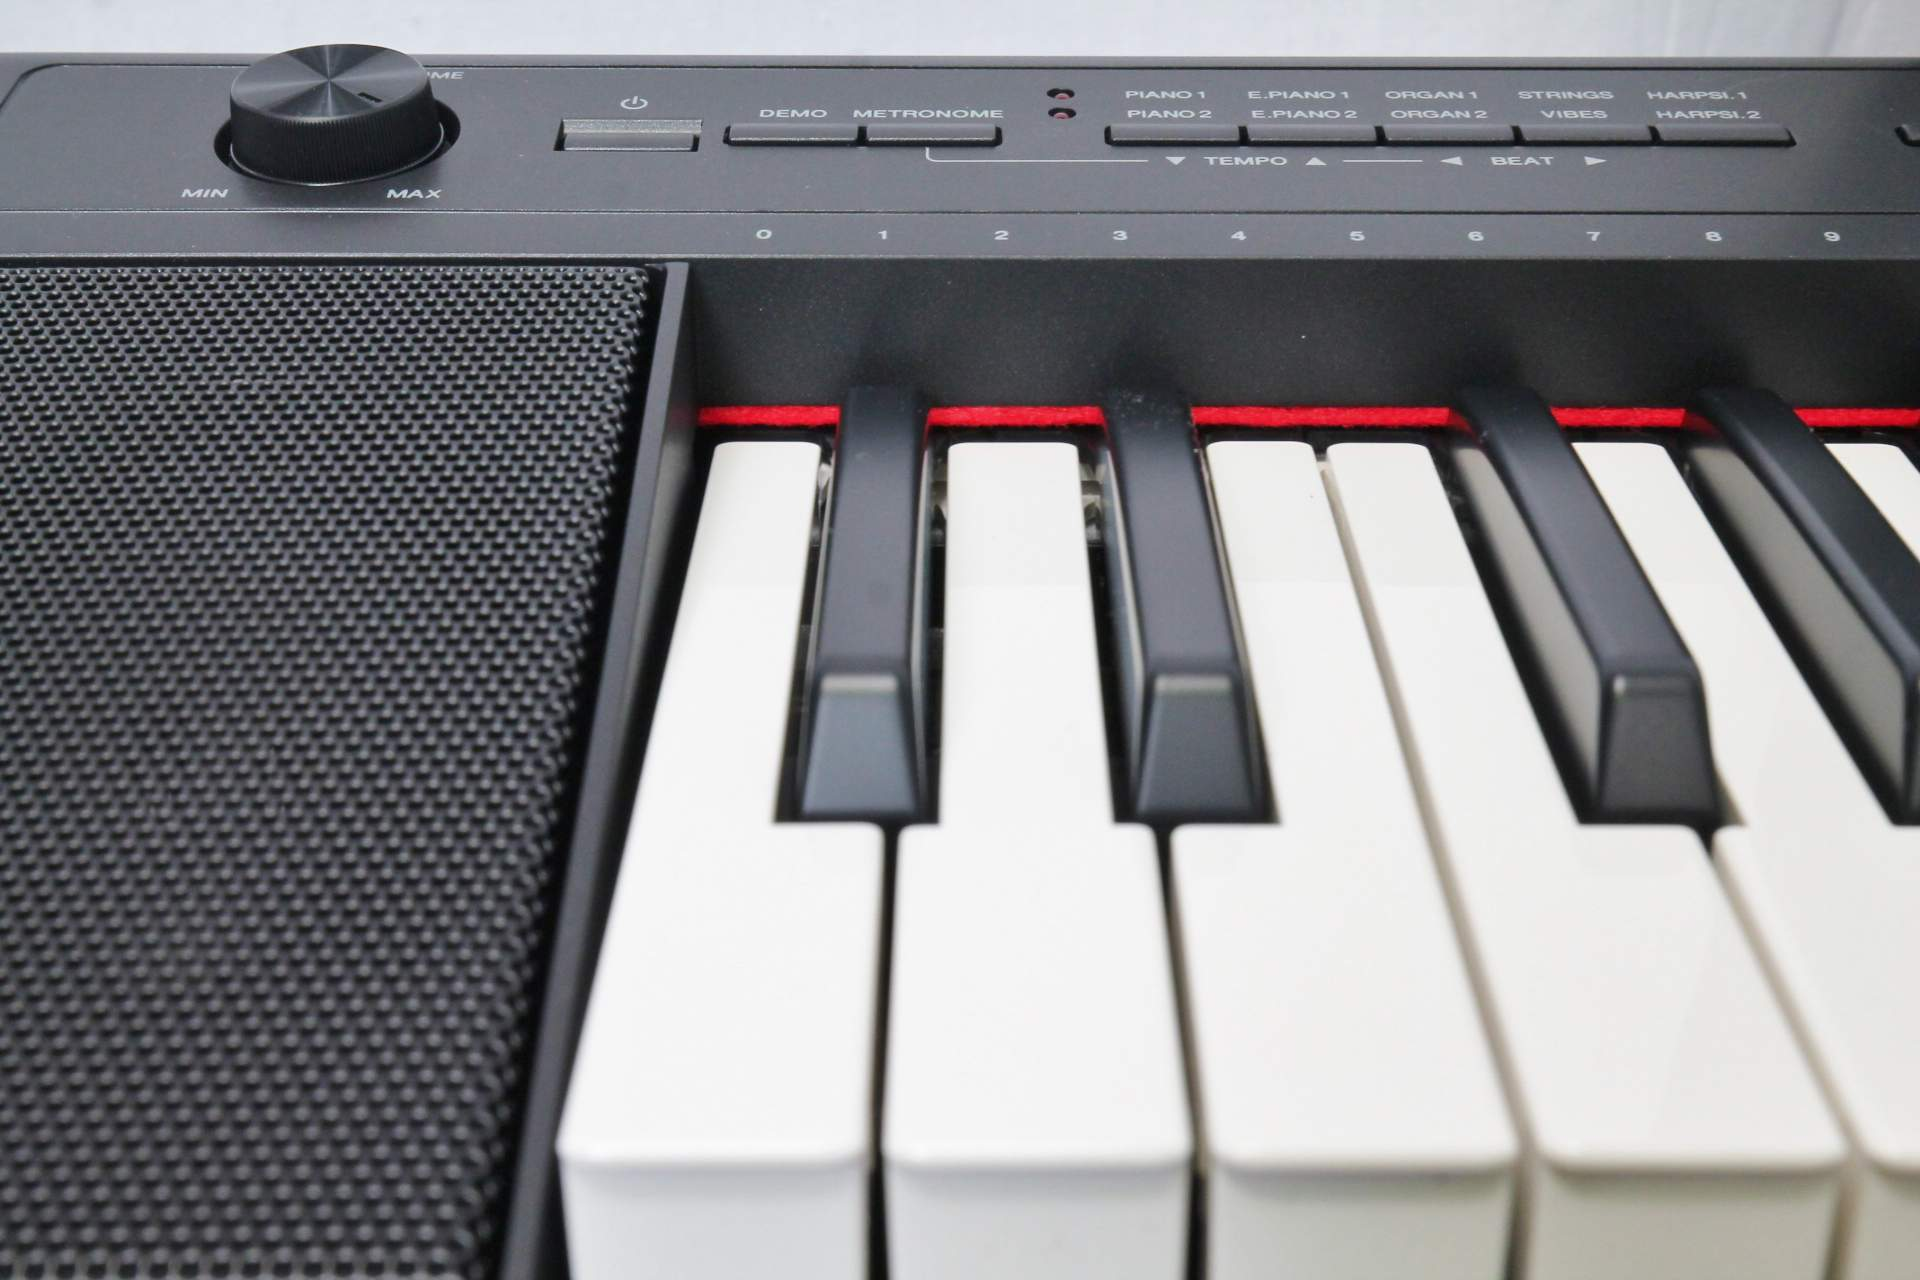 yamaha np12 rent from 10 month musicorp australia. Black Bedroom Furniture Sets. Home Design Ideas